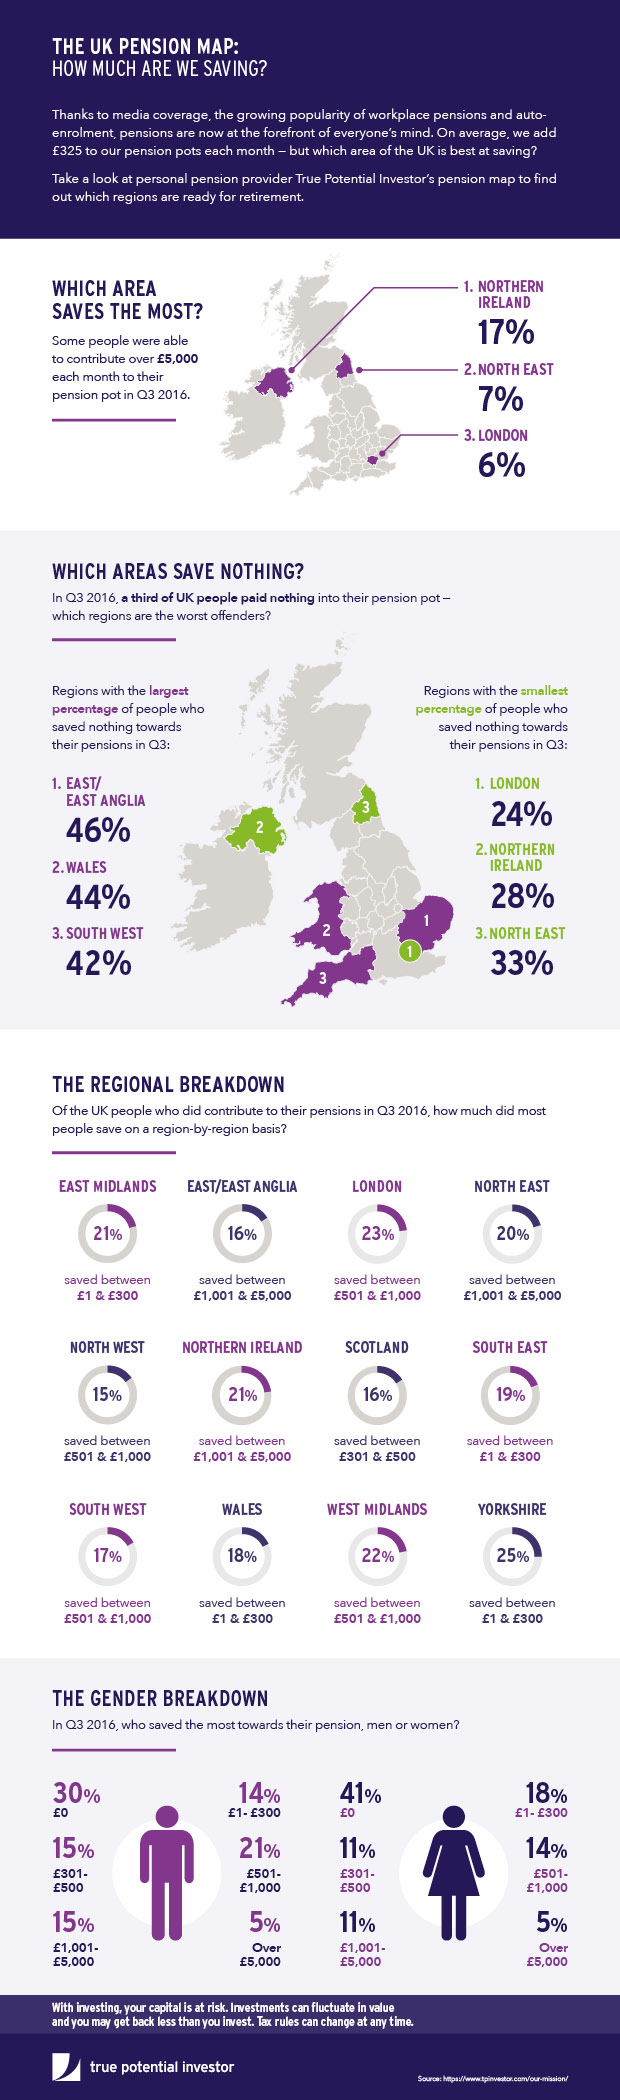 Retirement: How Well Is The UK Population Preparing?